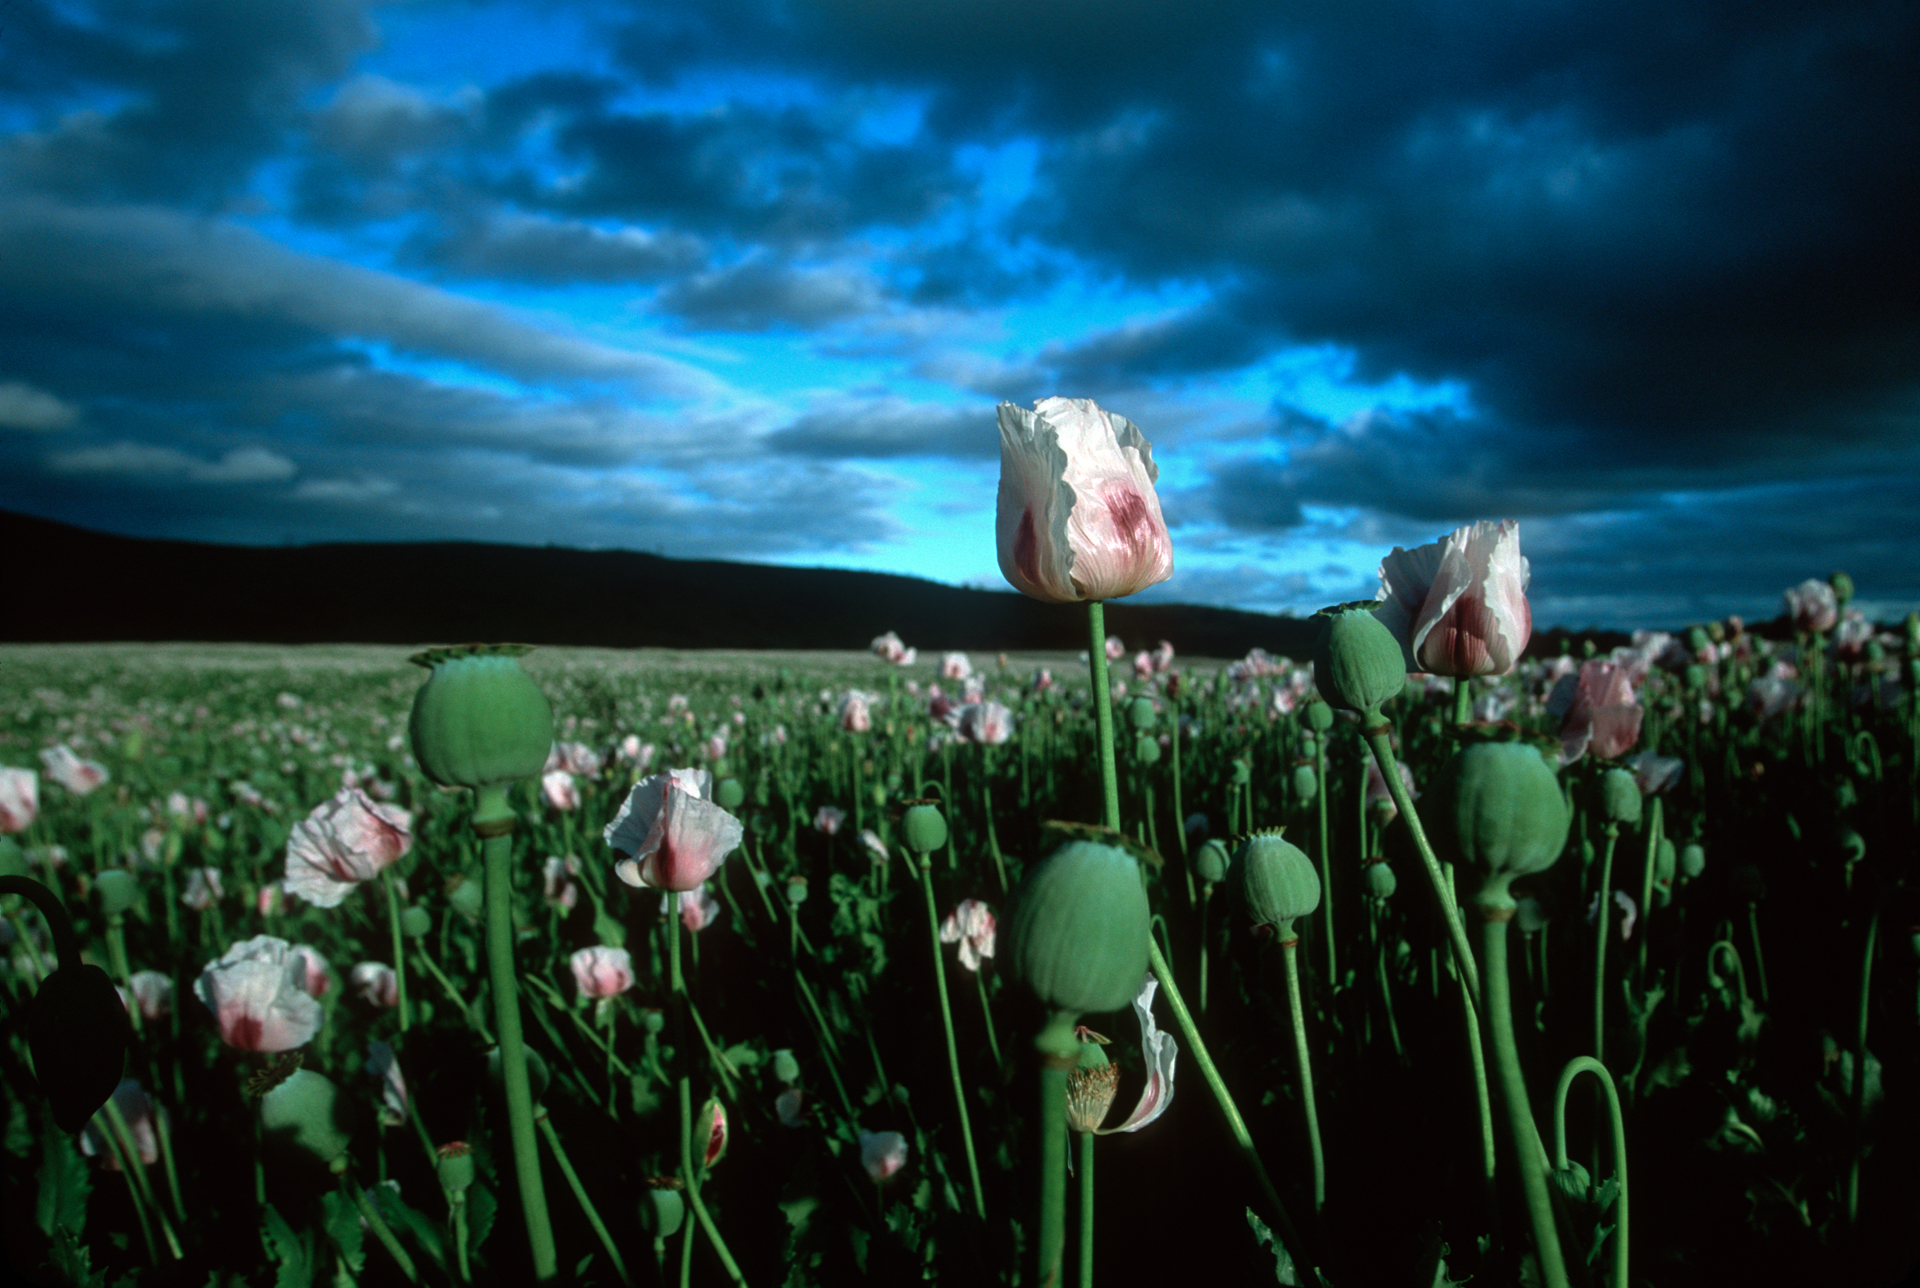 Tasmania grows about 50% of the world's legal crop of poppy seeds for medicinal use.  Richmond